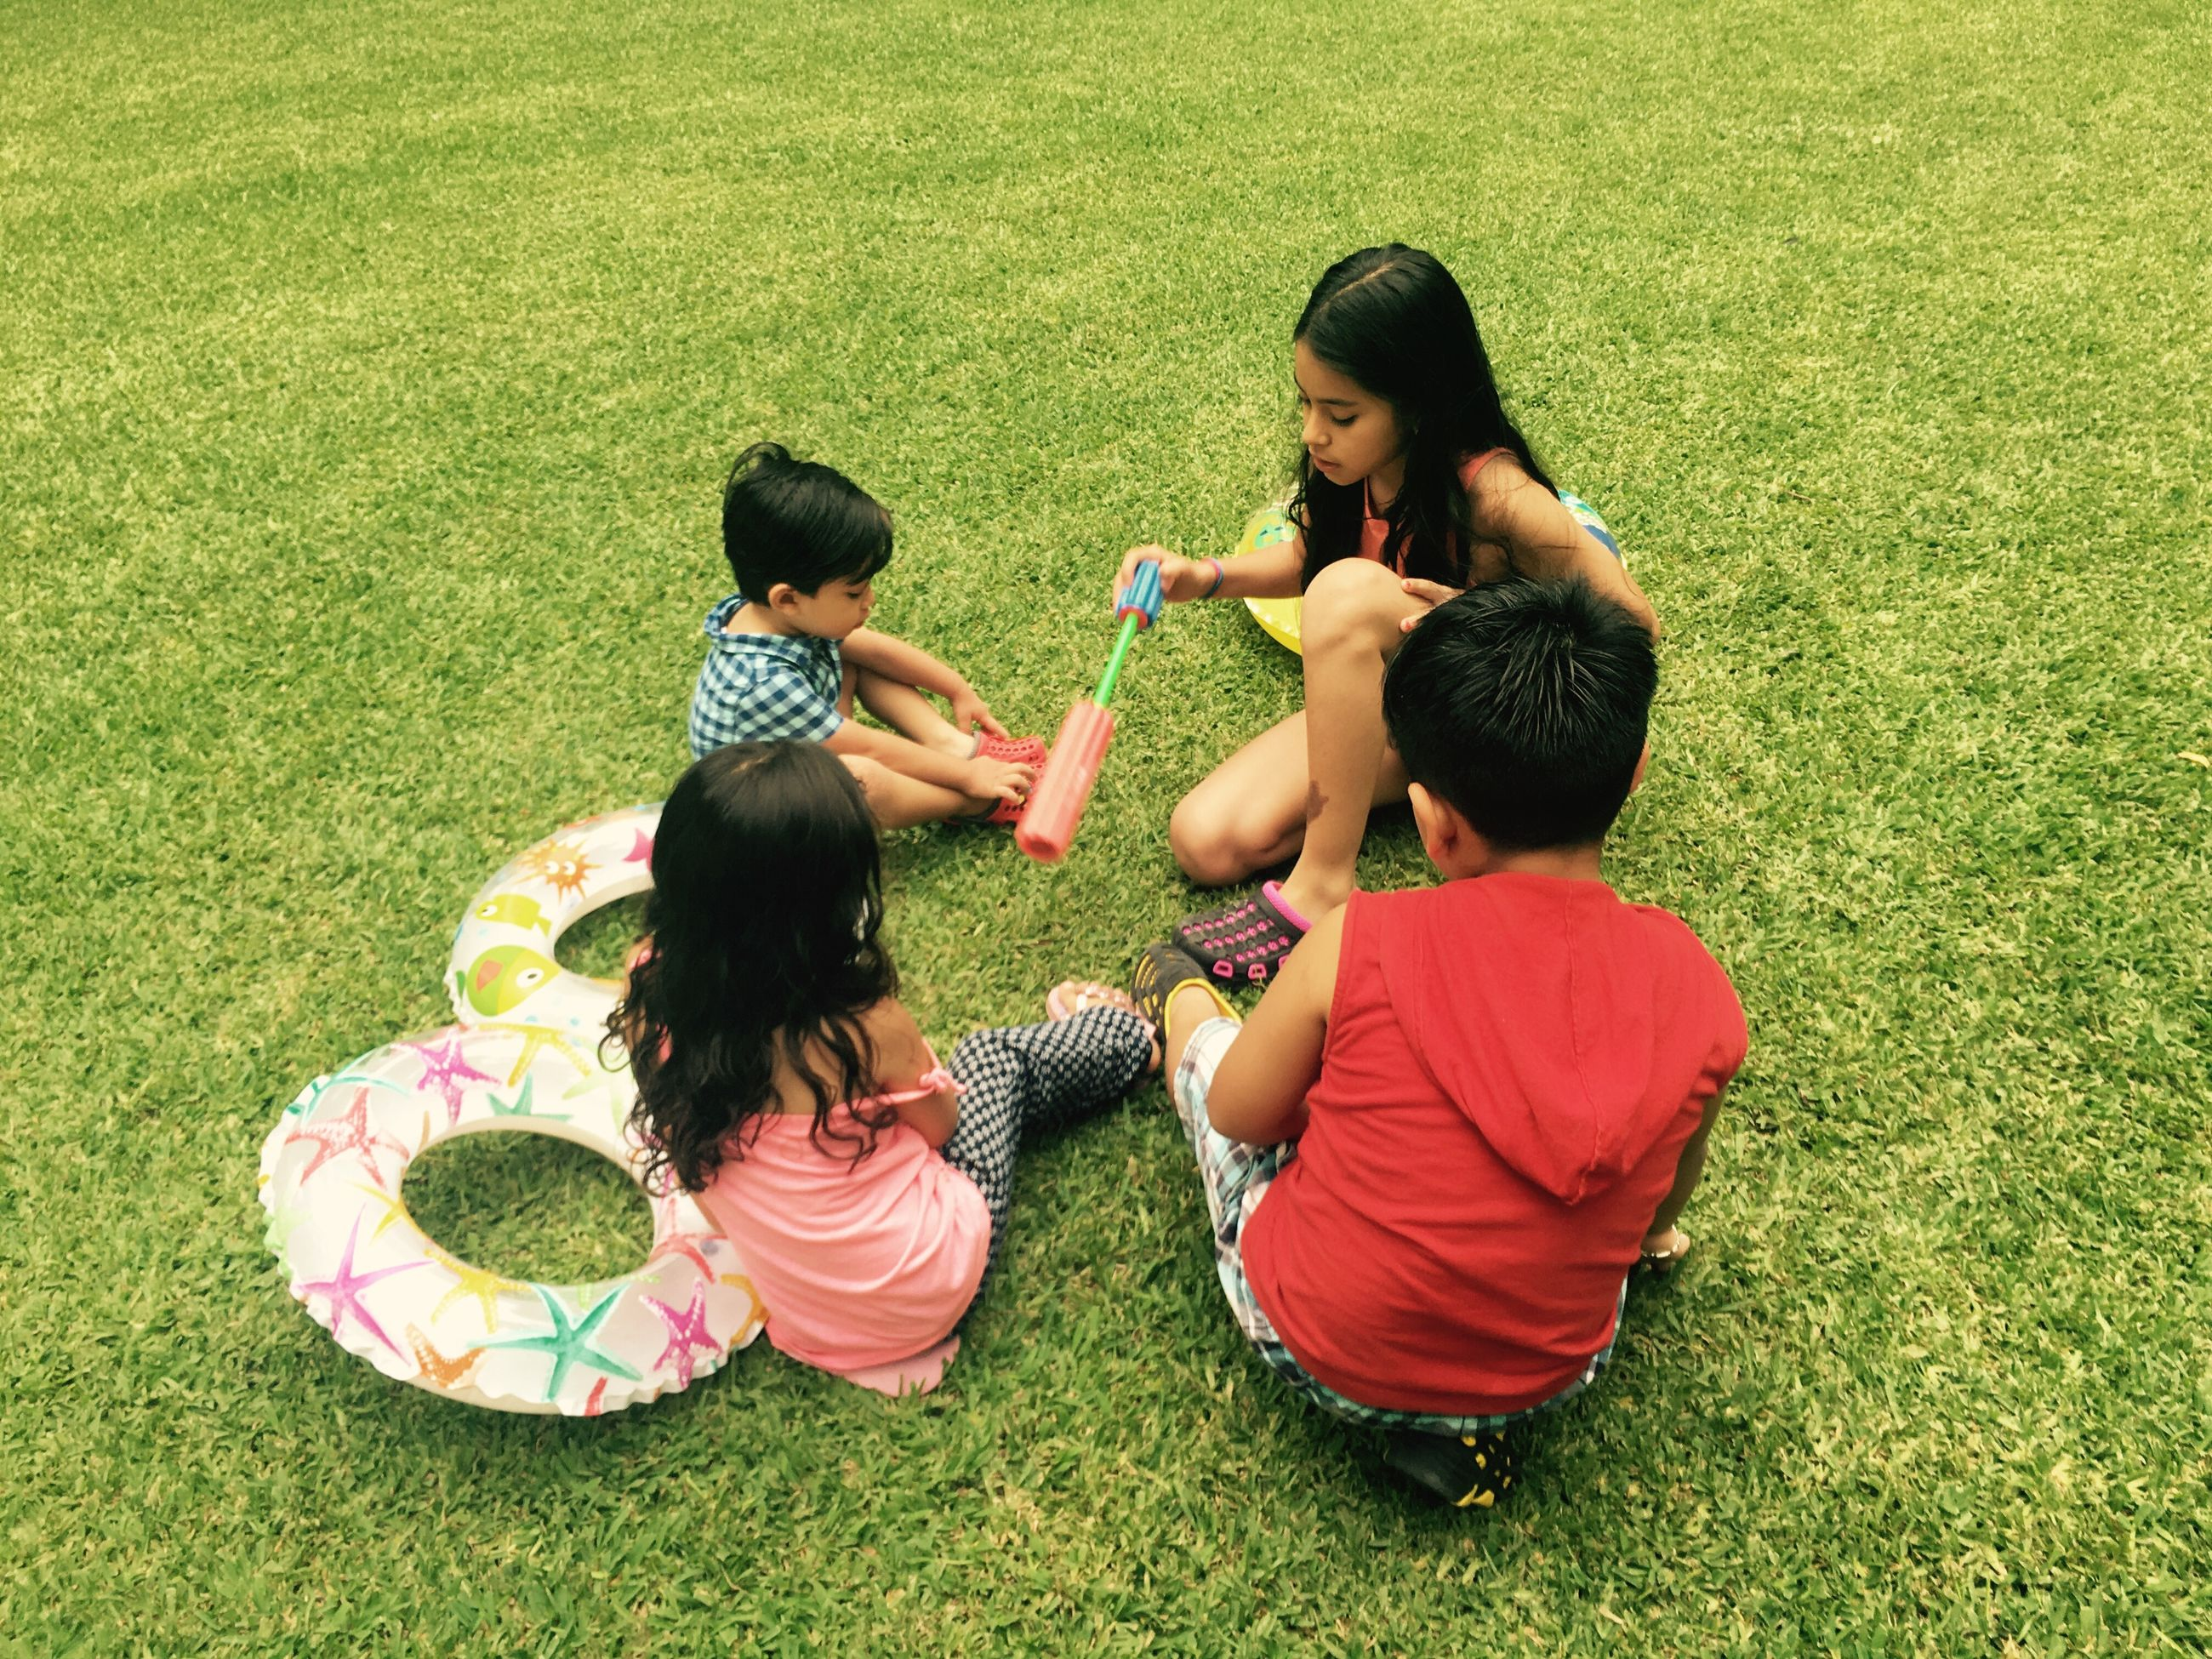 child, two people, high angle view, directly above, family, childhood, grass, girls, full length, fun, females, brother, playing, outdoors, people, togetherness, heat - temperature, friendship, day, human body part, adult